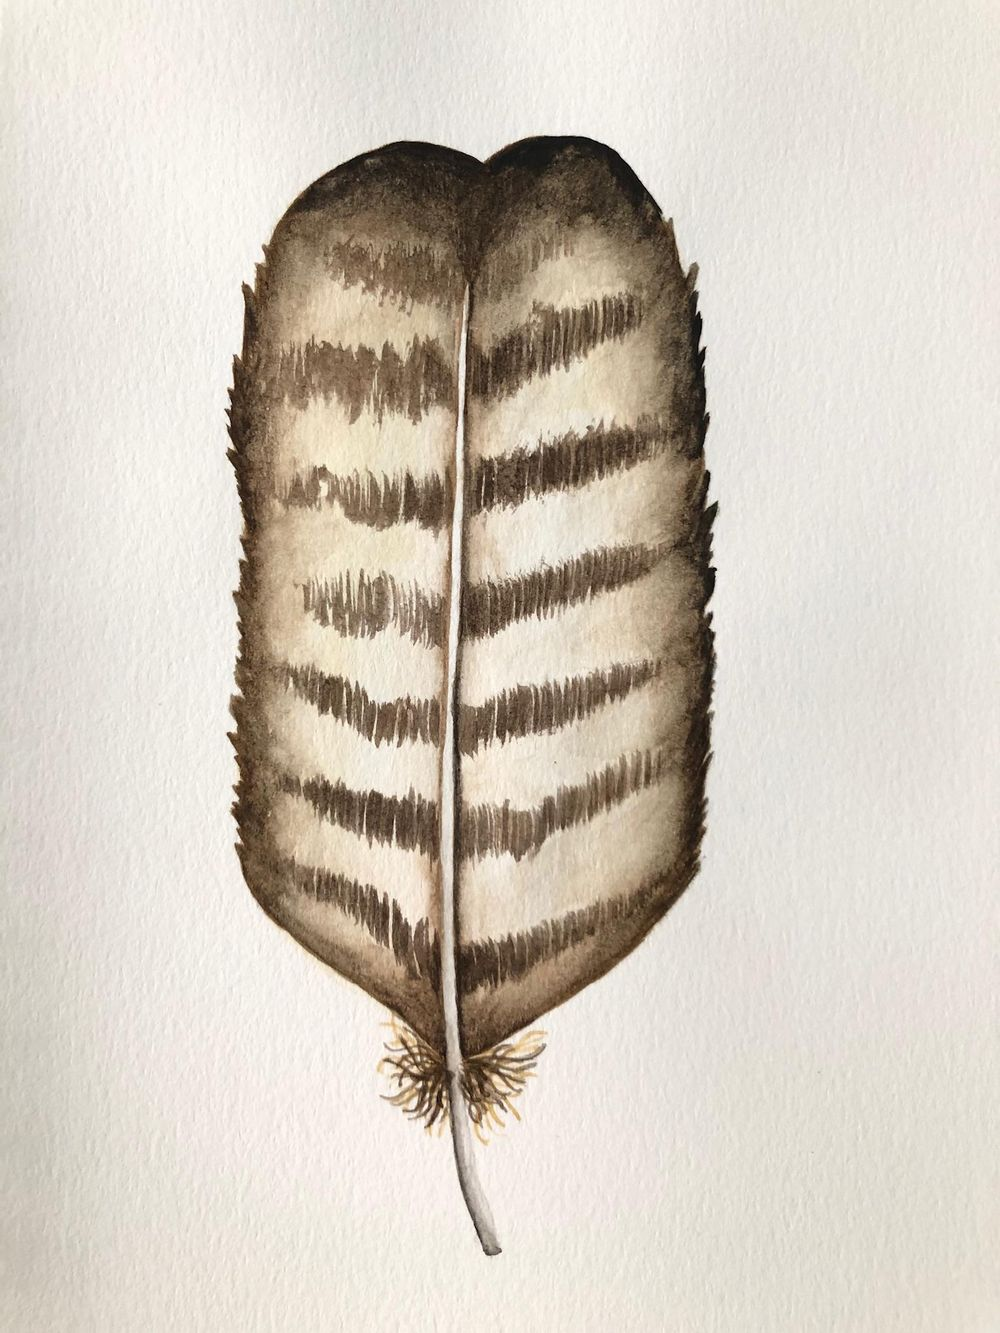 Painting Feathers - image 4 - student project